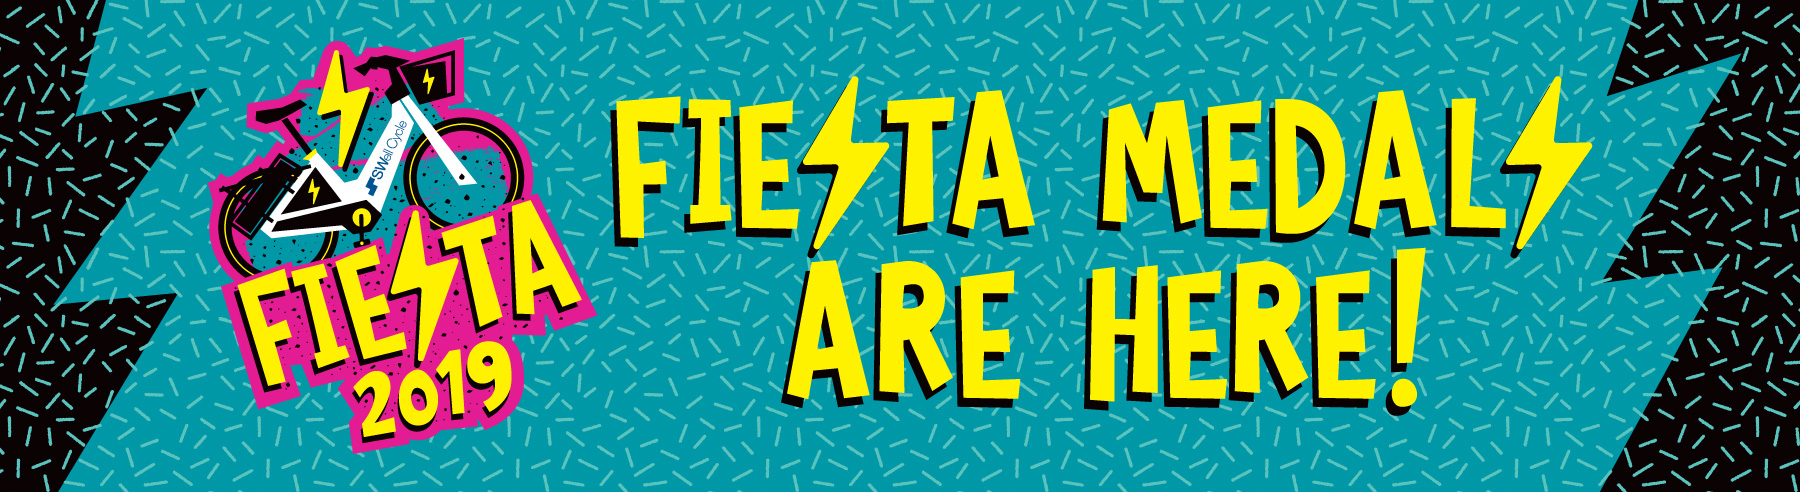 SWell Fiesta Medals are here!